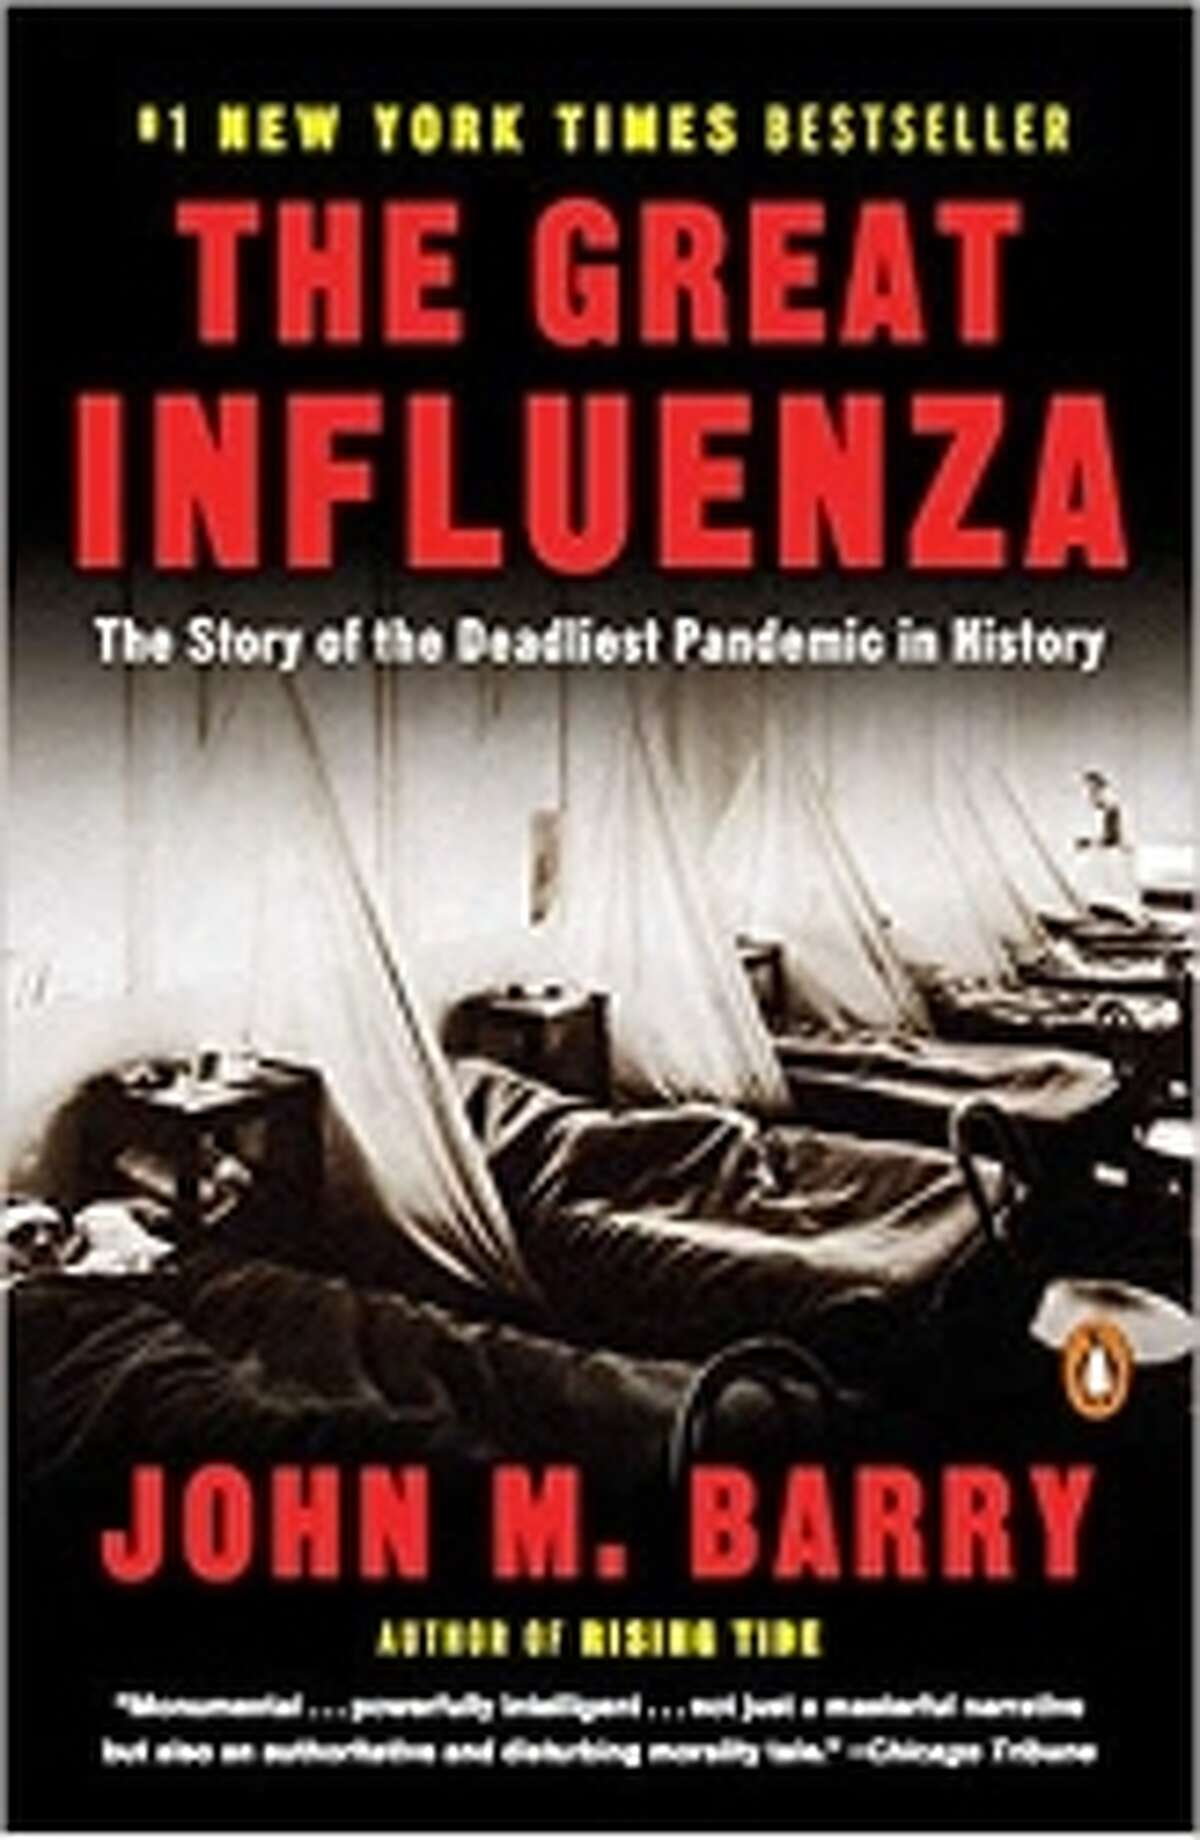 The Great InfluenzaJohn M. BarryAnother book about the 1918 pandemic and the risks of a resurgence-this time with far more historical and medical detail. Though some find it overwhelming (just read some of the negative reader reviews on Amazon), the information is invaluable.